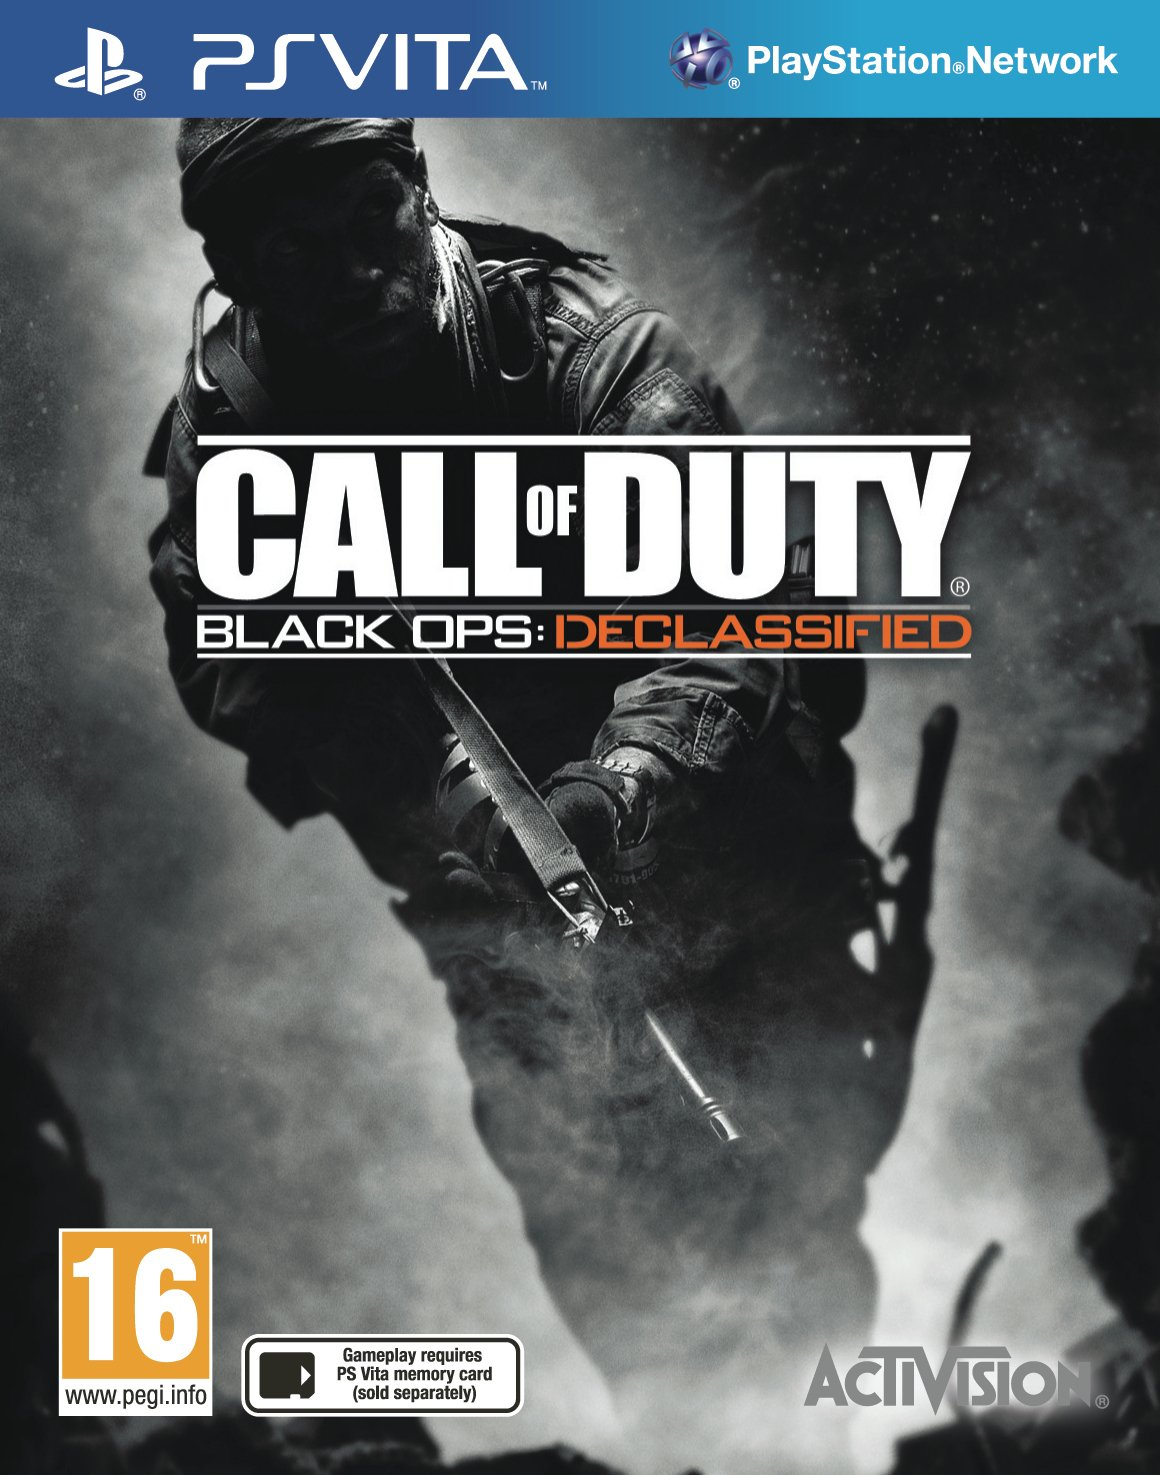 call-of-duty-black-ops-ps-vita-game